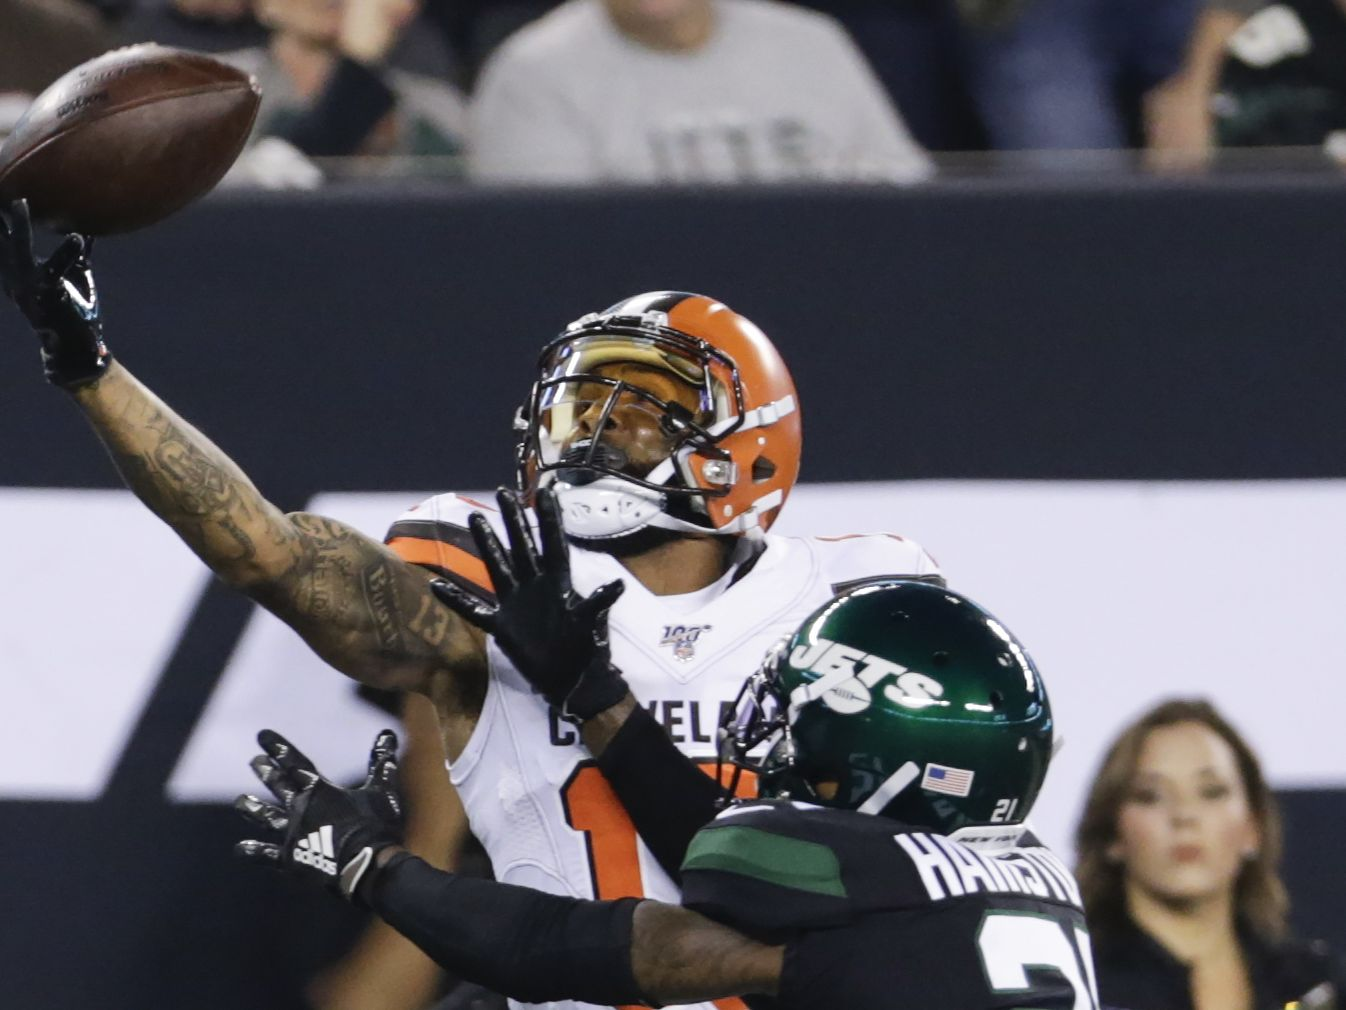 OBJ, Mayfield and Chubb lead the way in Browns 23-3 win over Jets (video)